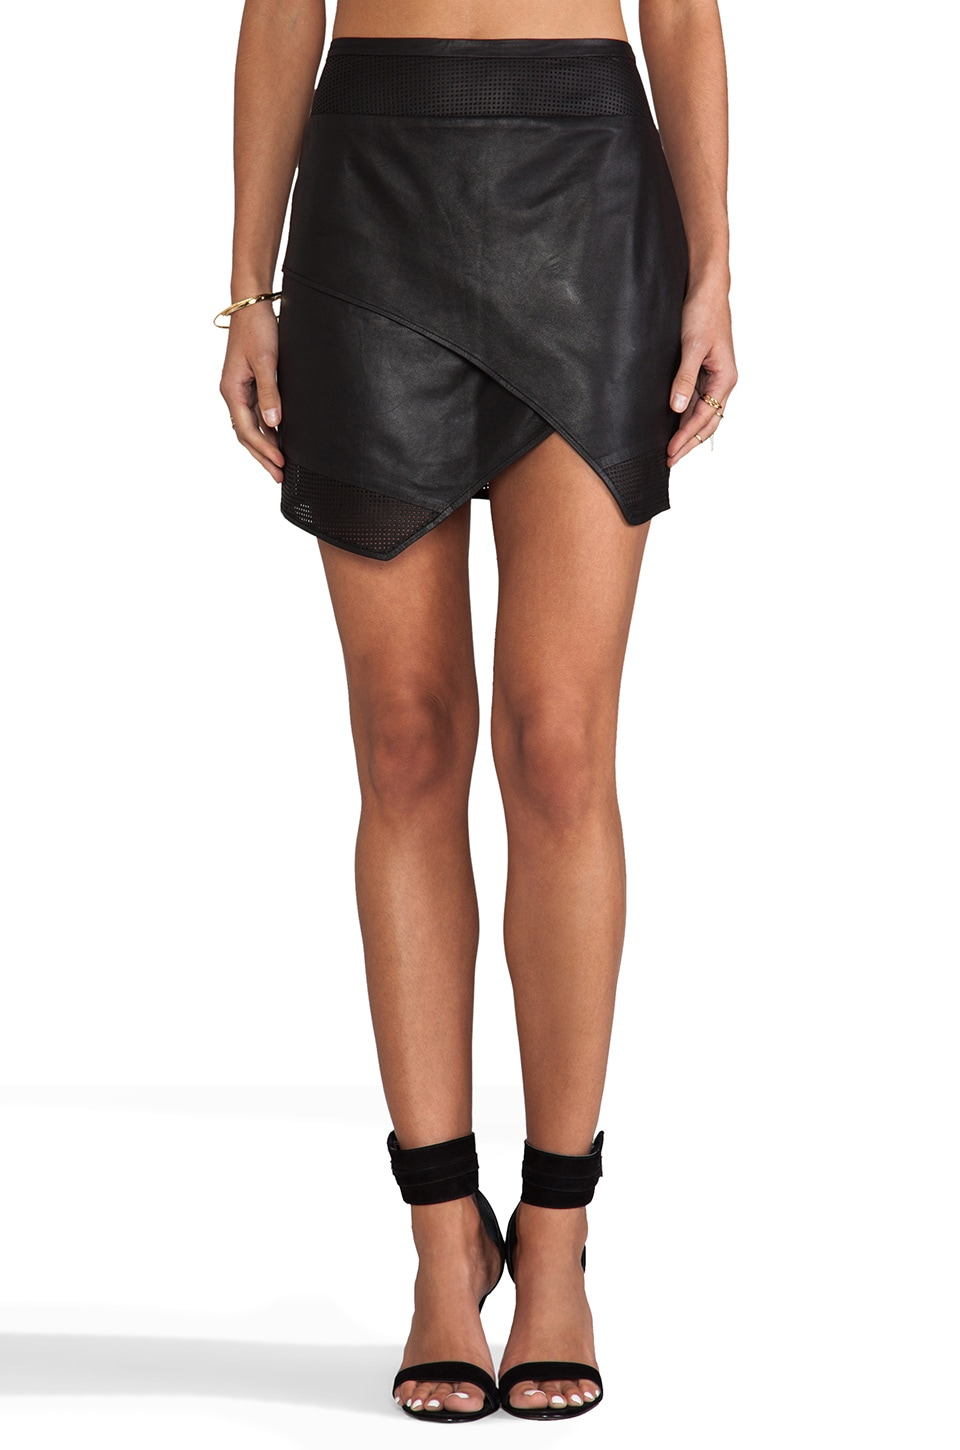 LaMarque Ivy Skirt in Black